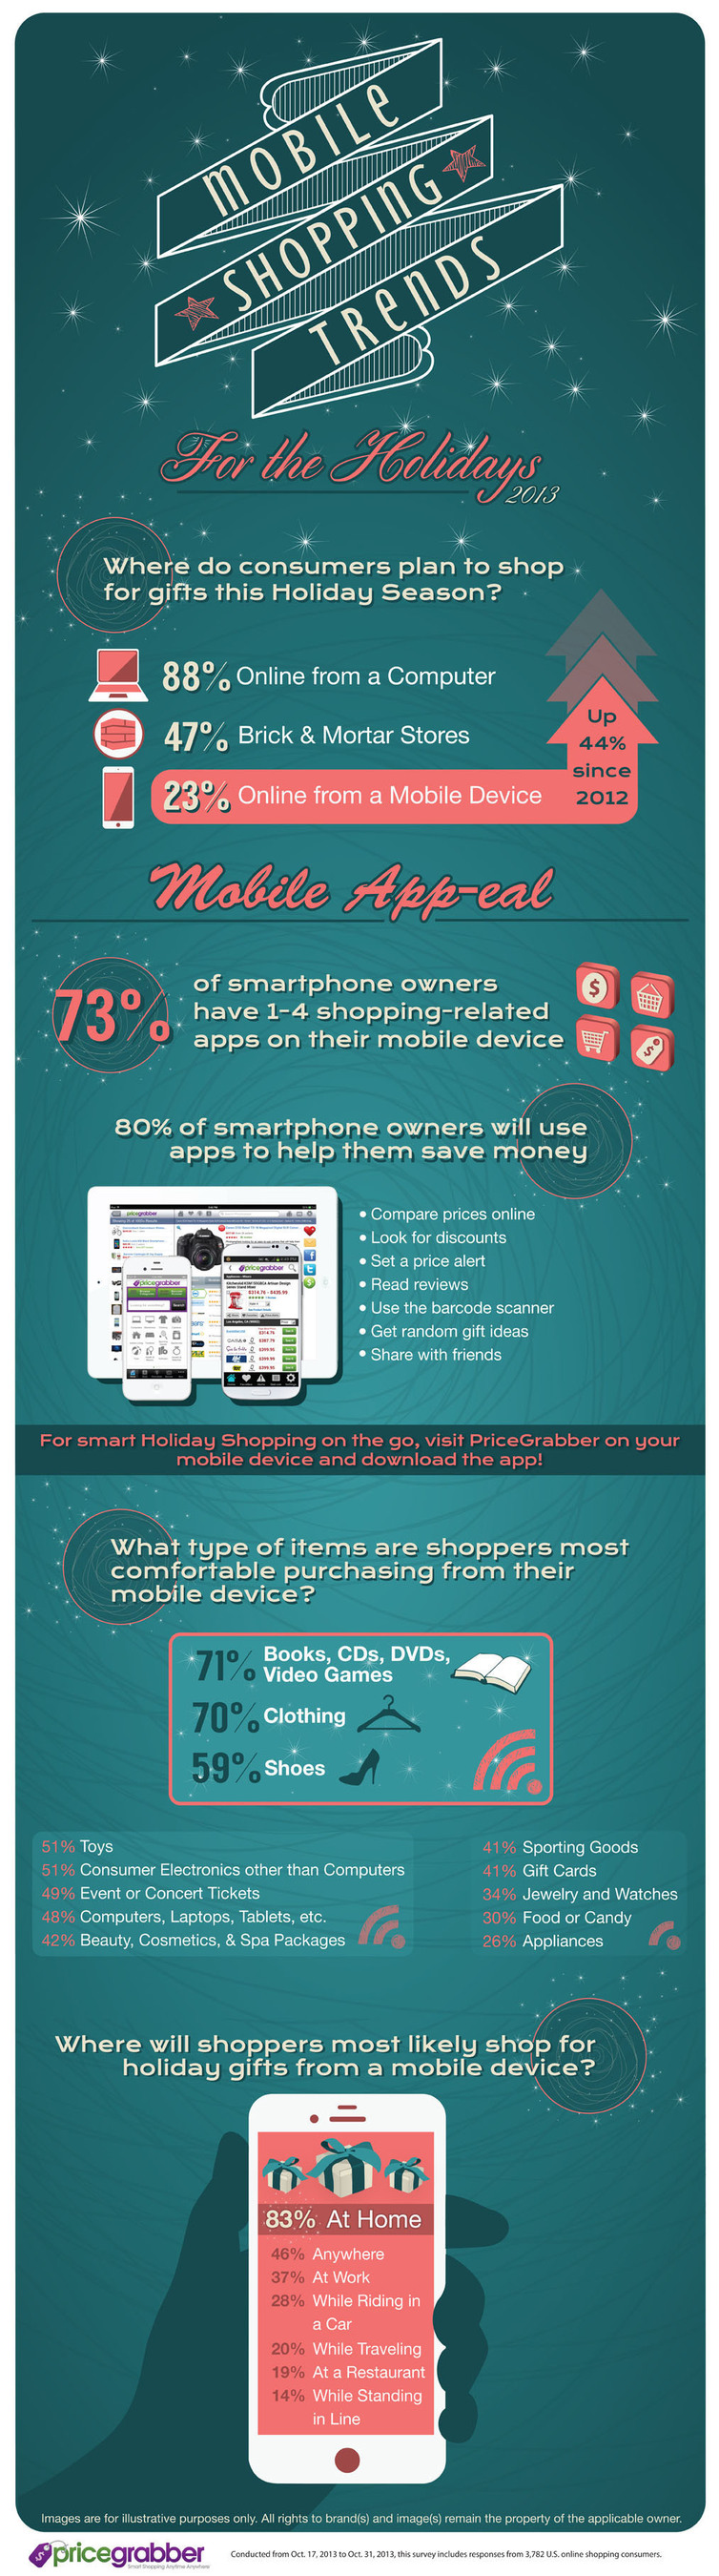 Mobile Shopping Trends For The Holidays From PriceGrabber Survey. (PRNewsFoto/PriceGrabber.com) ...